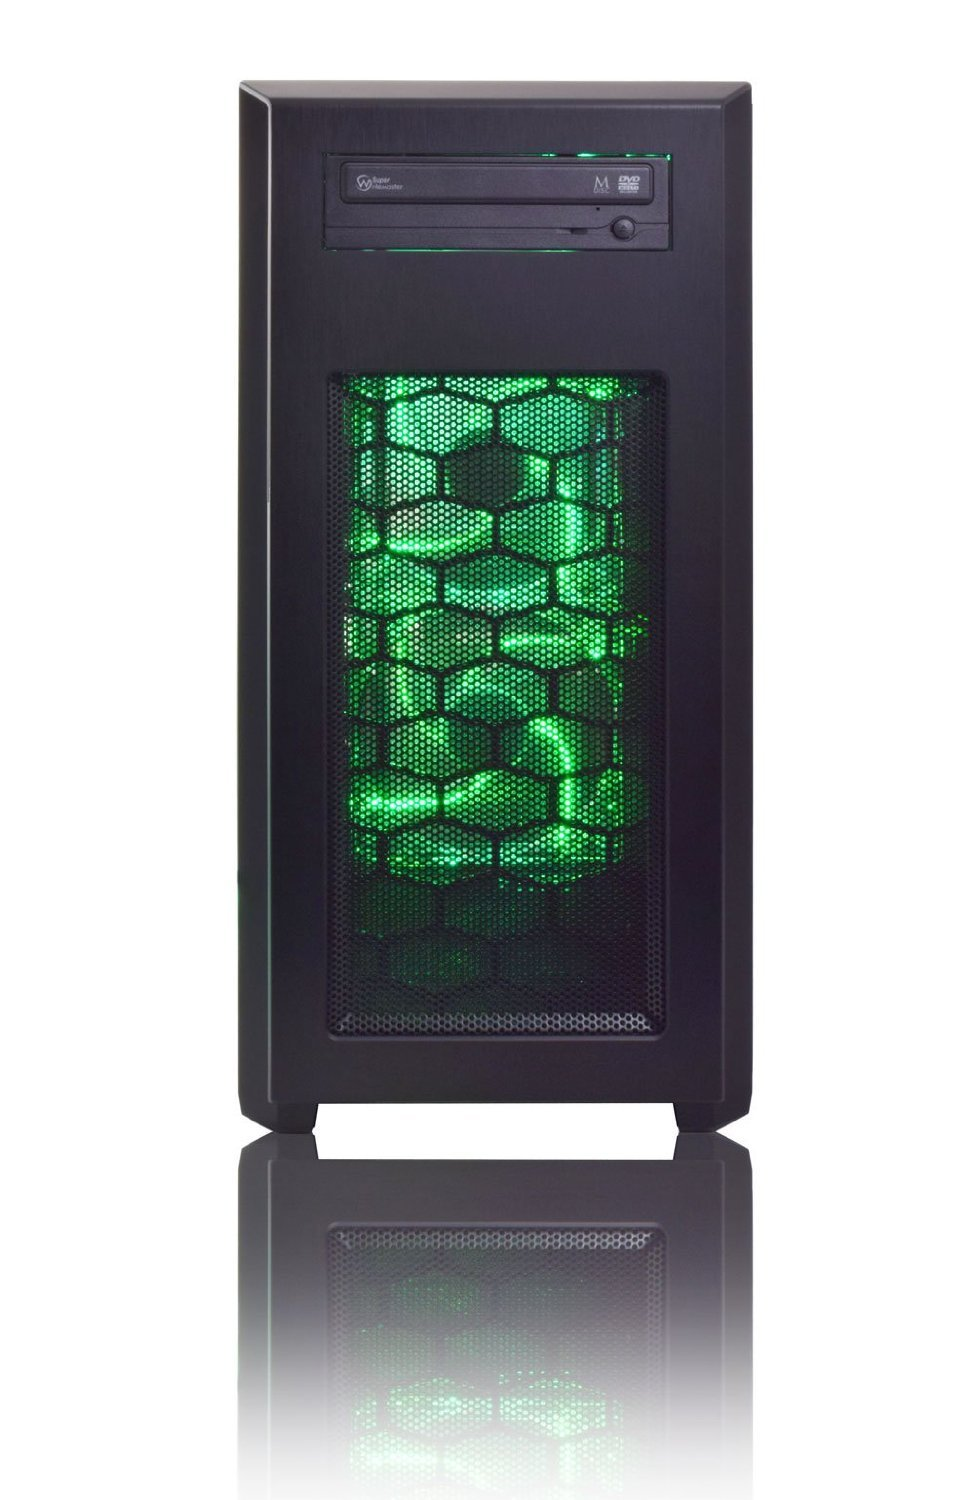 ADMI-ULTRA-GAMING-PC-AMD-FX-8350-High-Spec-Green-LED-Home-Family-Multimedia-Desktop-Gaming-Computer-with-Platinum-Warranty-Powerful-AMD-40Ghz-Eight-Core-CPU-NVIDIA-GTX-960-2GB-DDR5-HDMI-Graphics-Card-